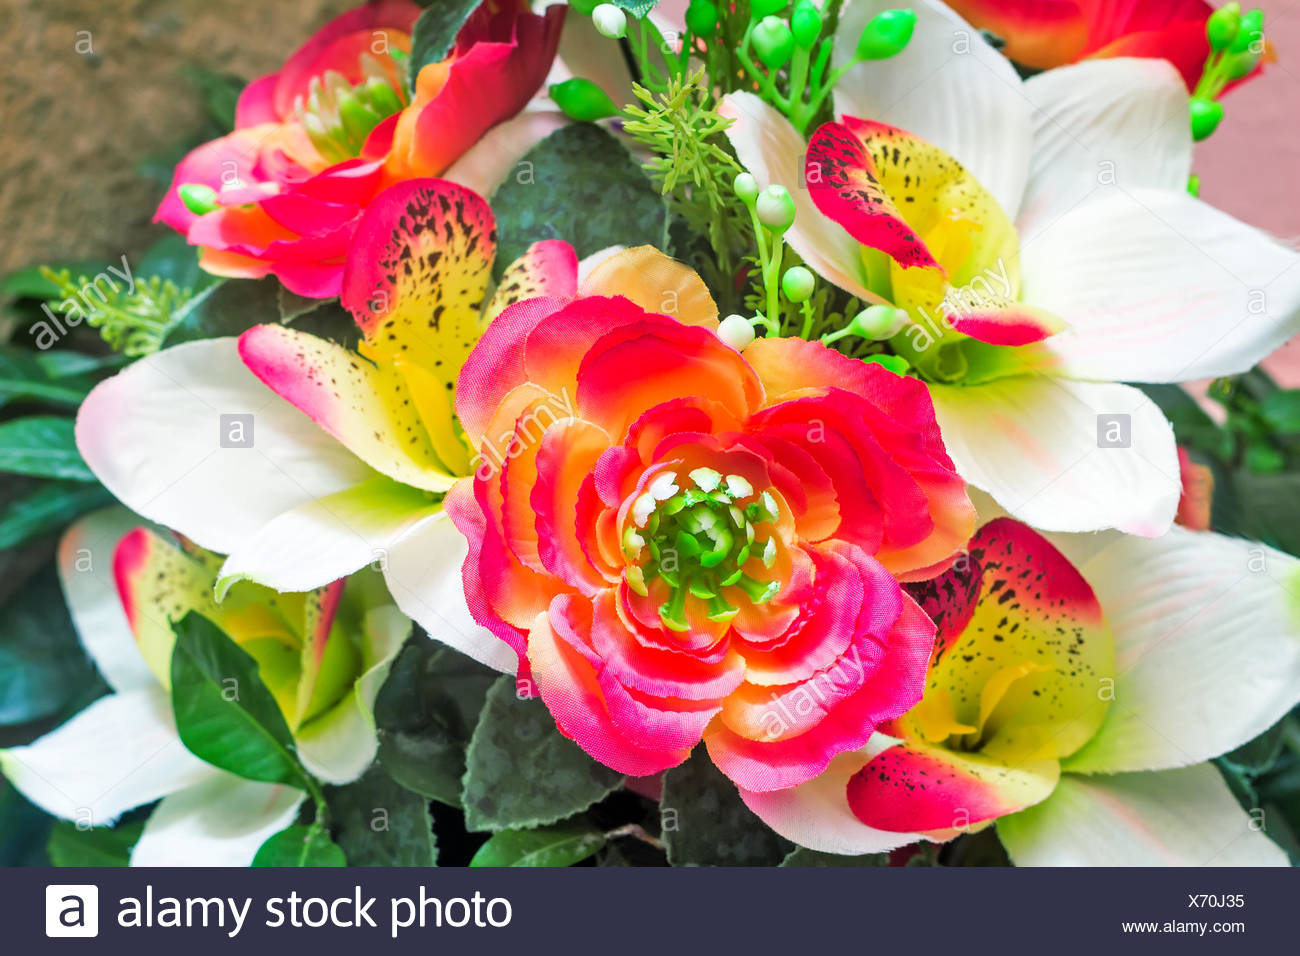 Artificial Flowers And Leaves Stock Photos Artificial Flowers And